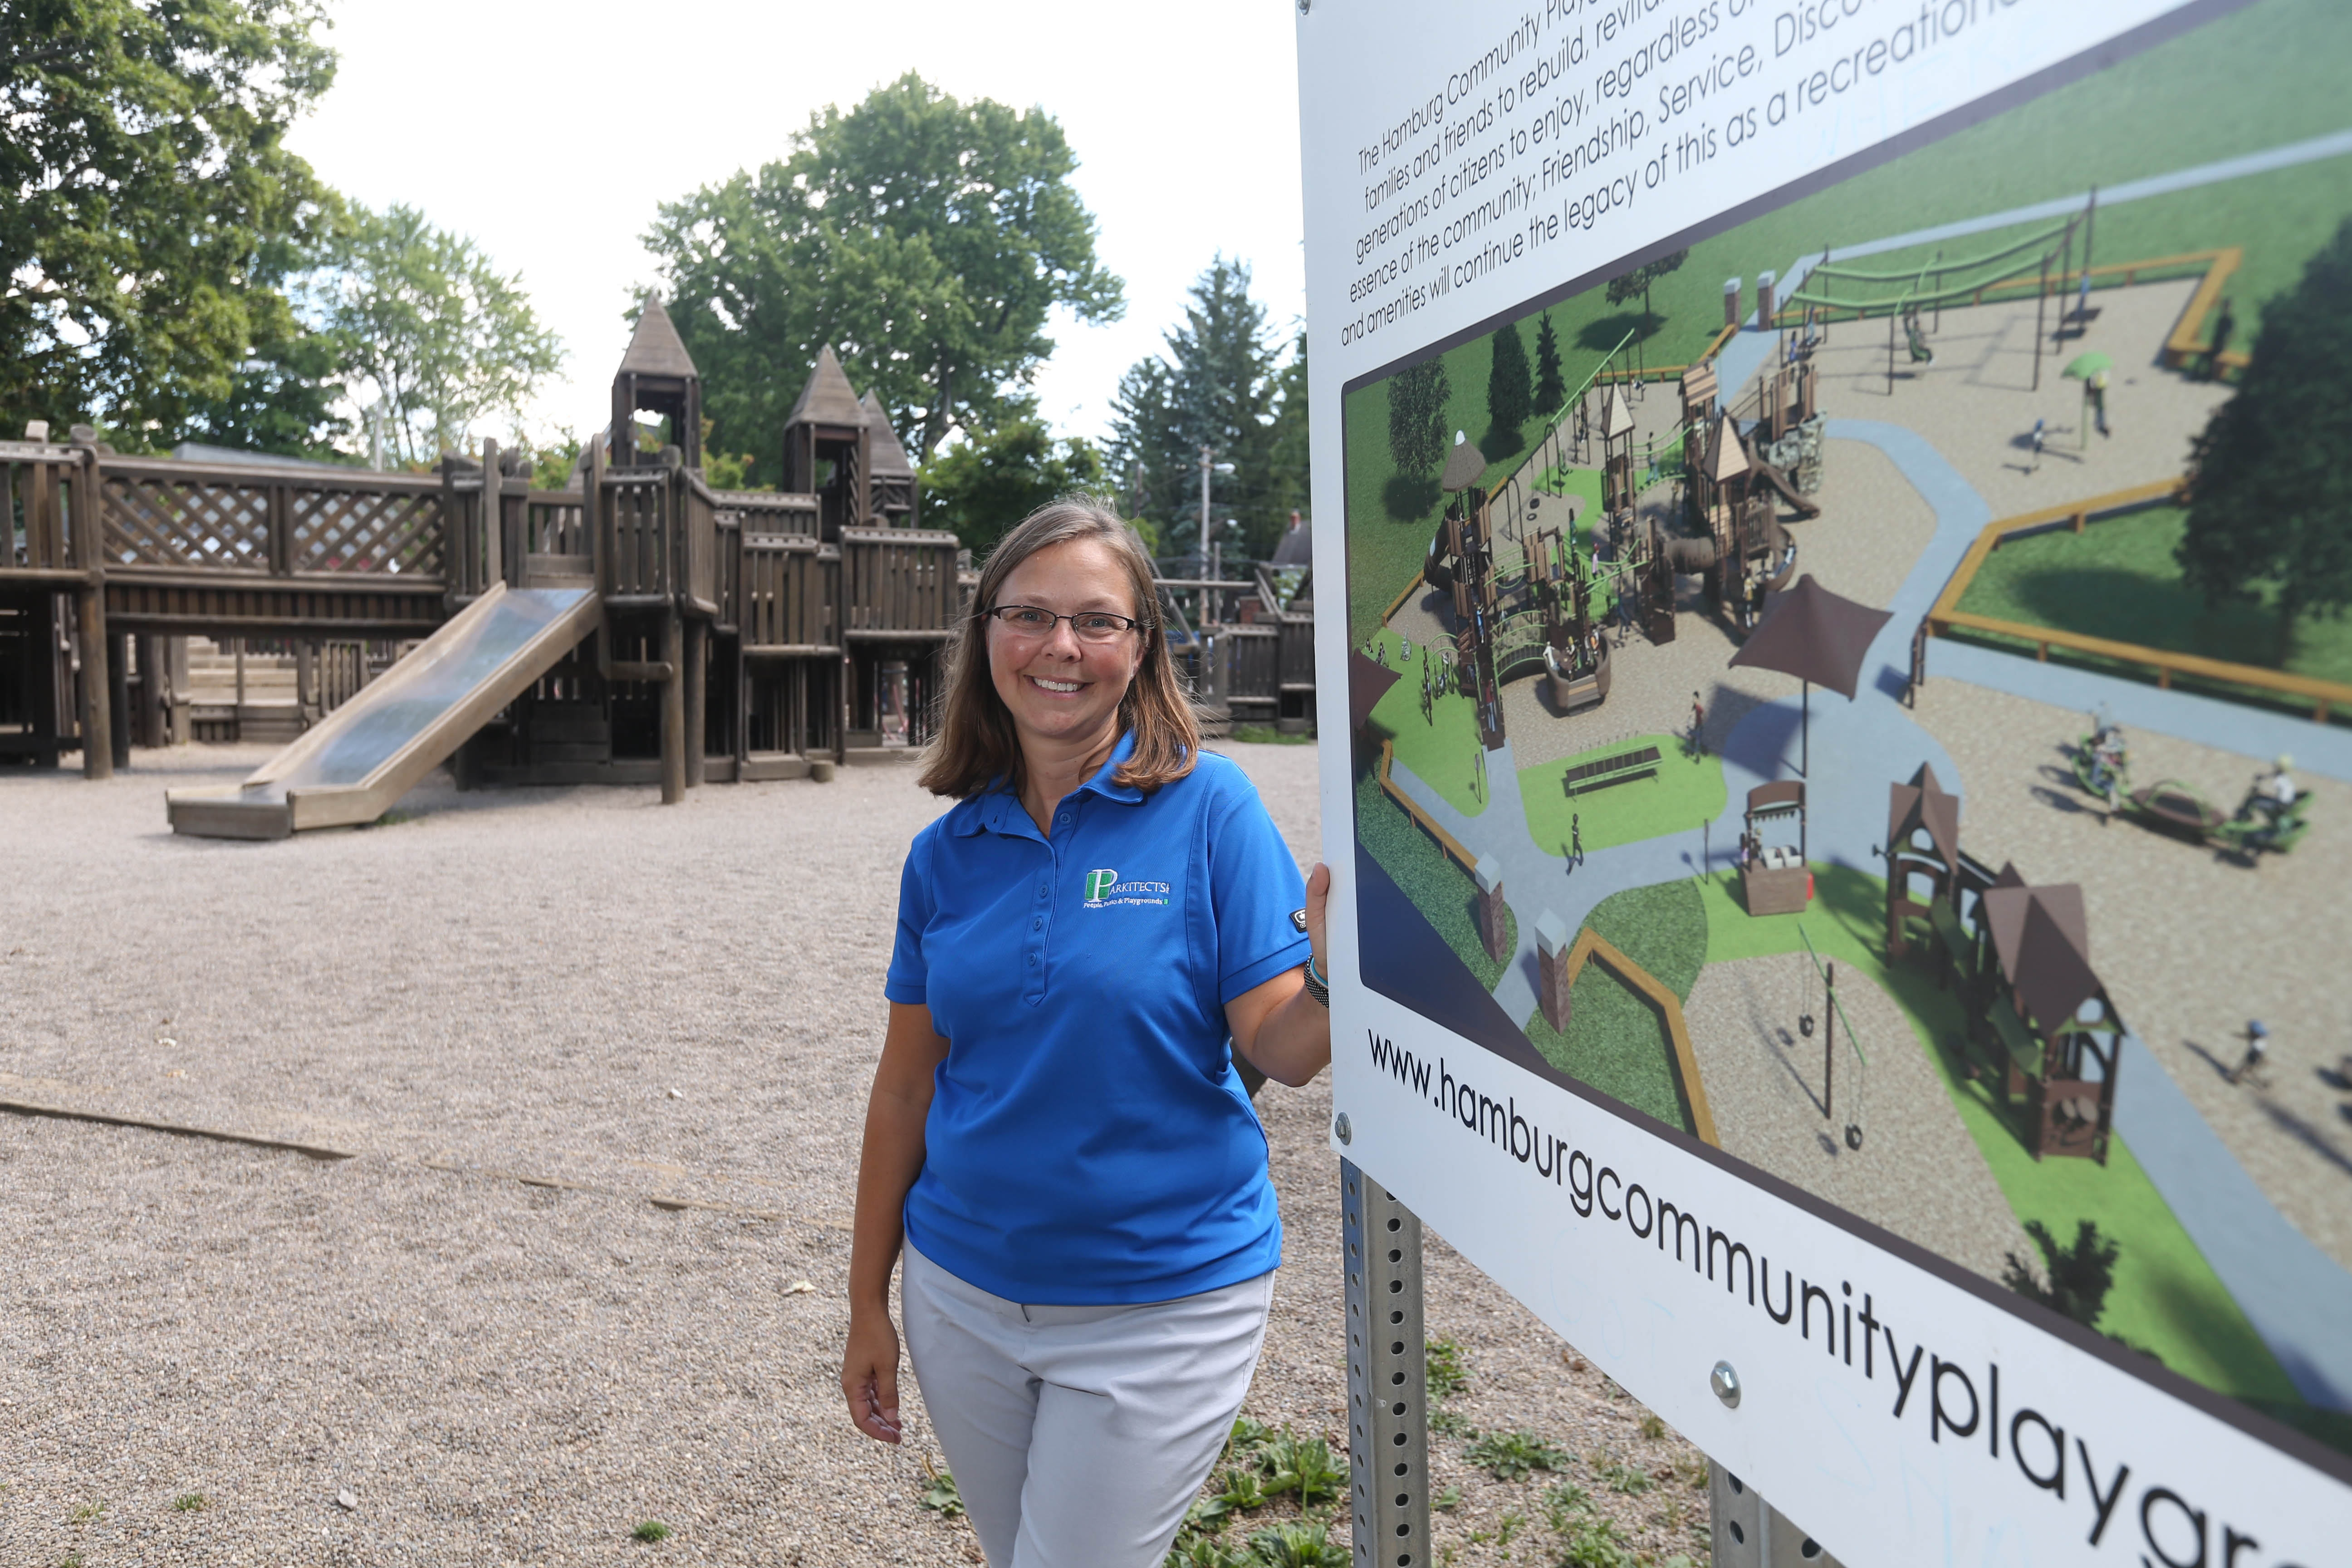 """""""We wanted to make sure it was all-inclusive, for kids ages 2 to 12 and for all abilities. We're really paying homage to the existing one, picking similar color palettes, similar pieces with the roofs, incorporating pieces the kids really like."""" – Landscape architect Lynn Mason, on the new Hamburg Community Playground that she designed for her hometown"""